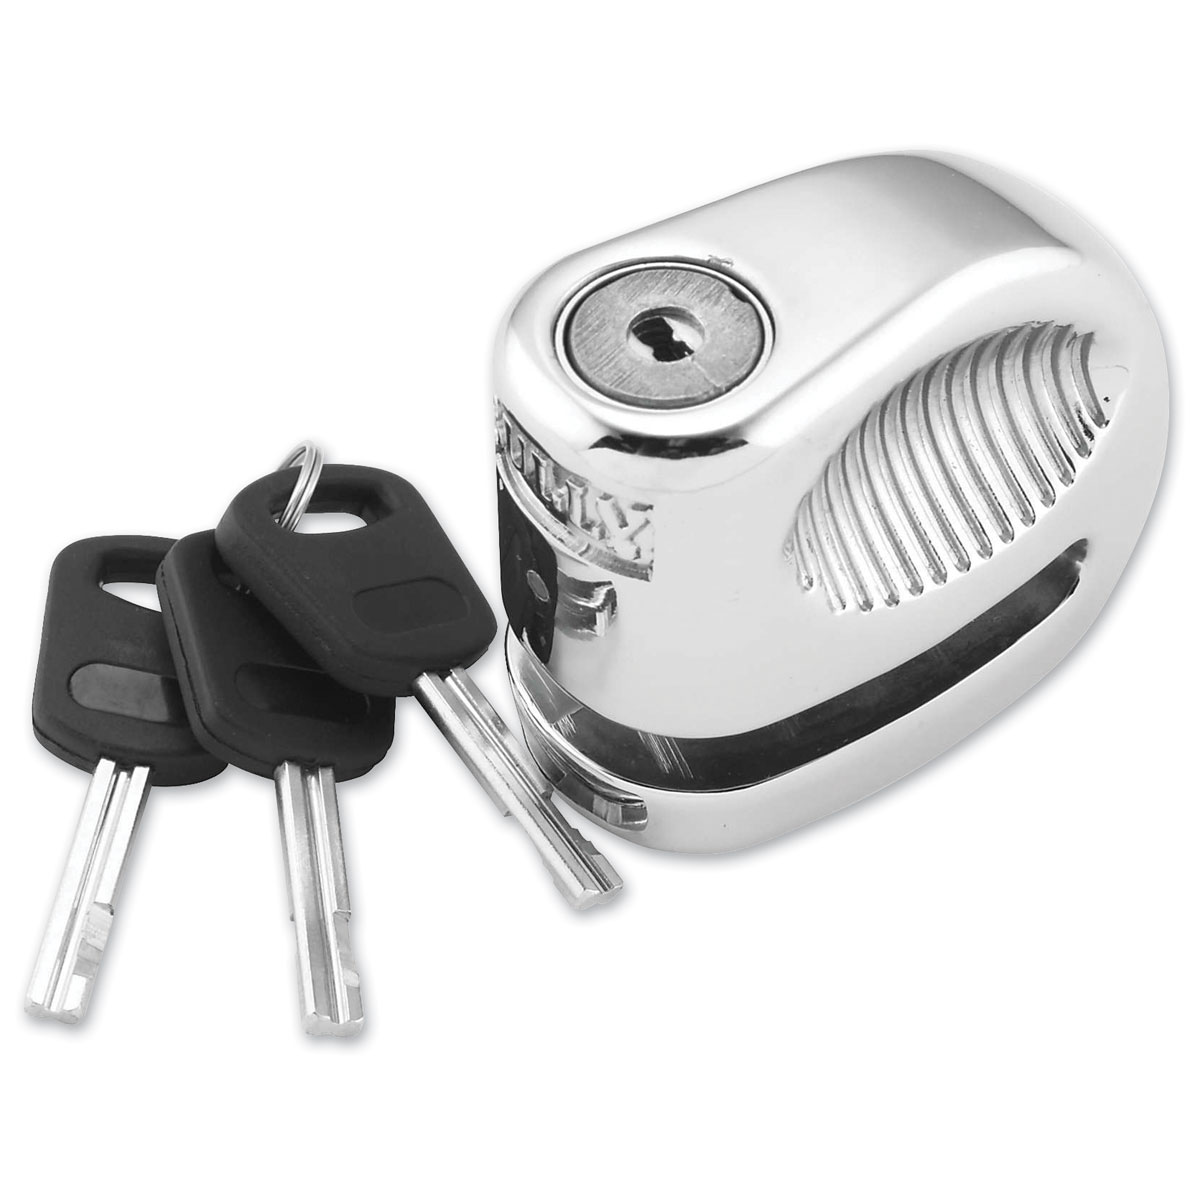 Bully 5.5mm Chrome Lock Disc With Pouch